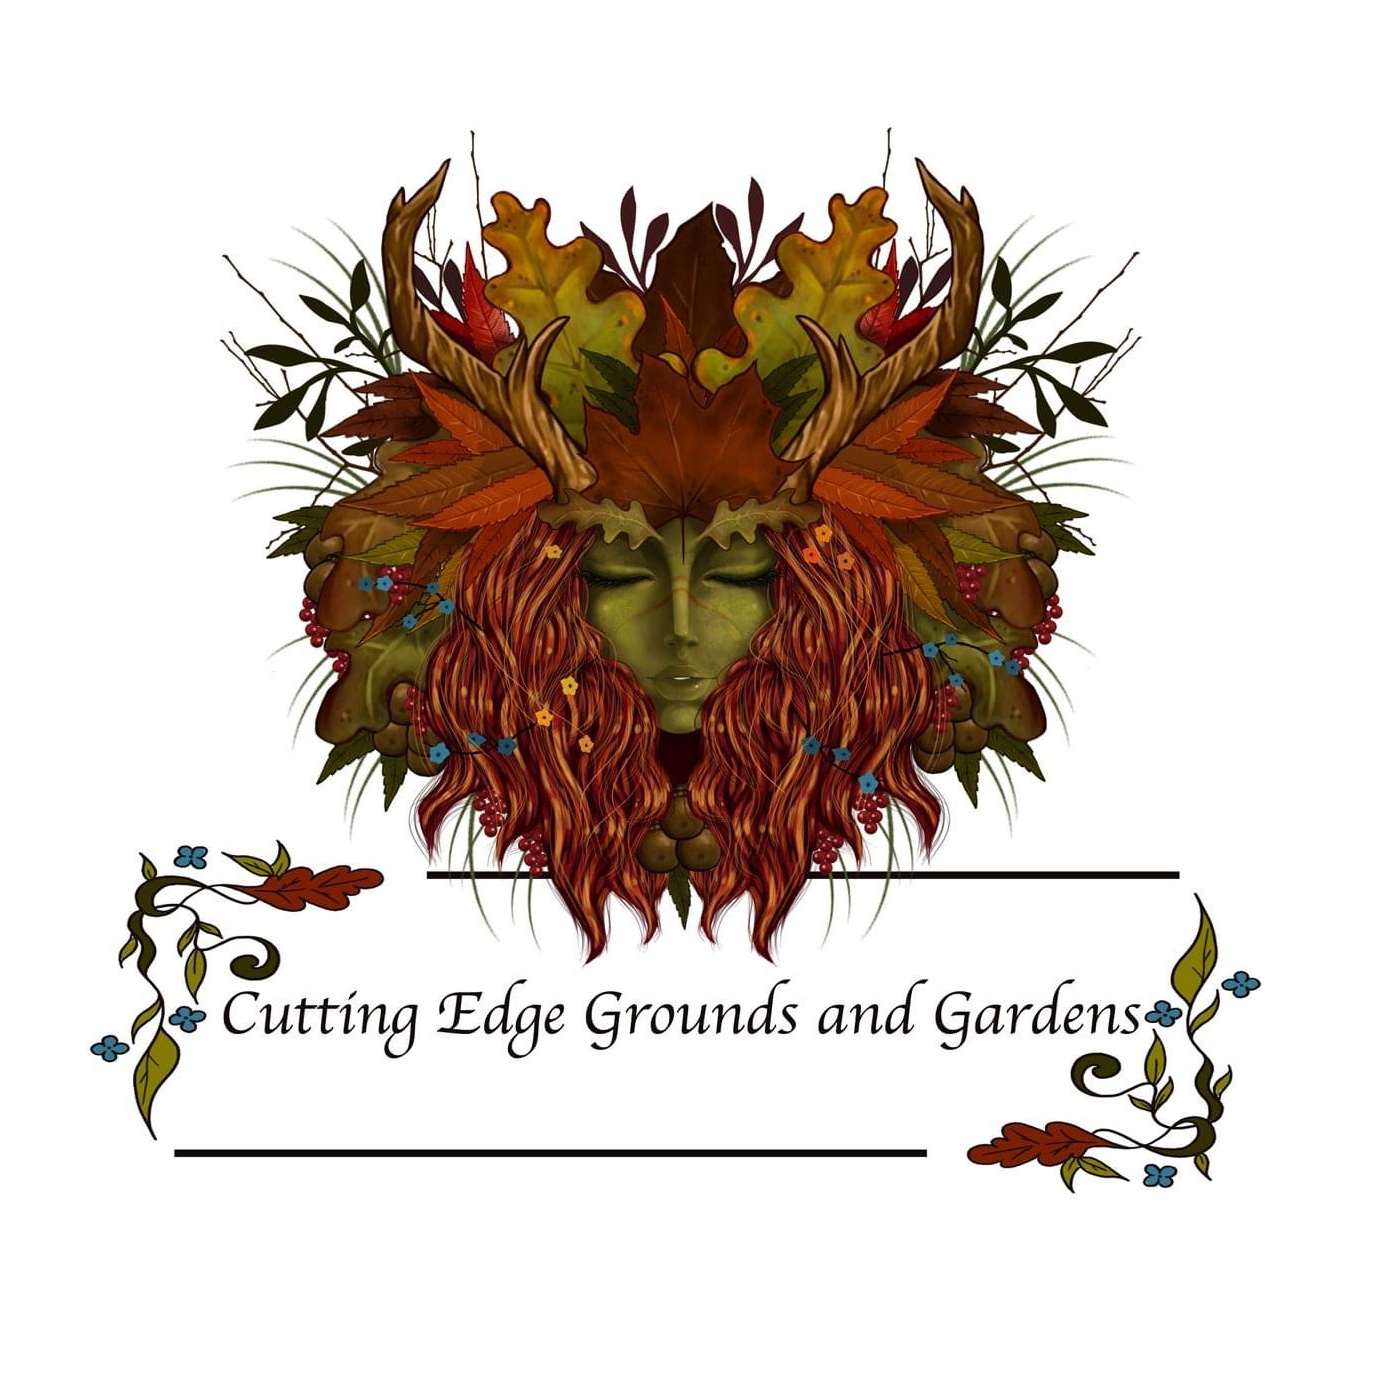 Cutting Edge Grounds and Gardens